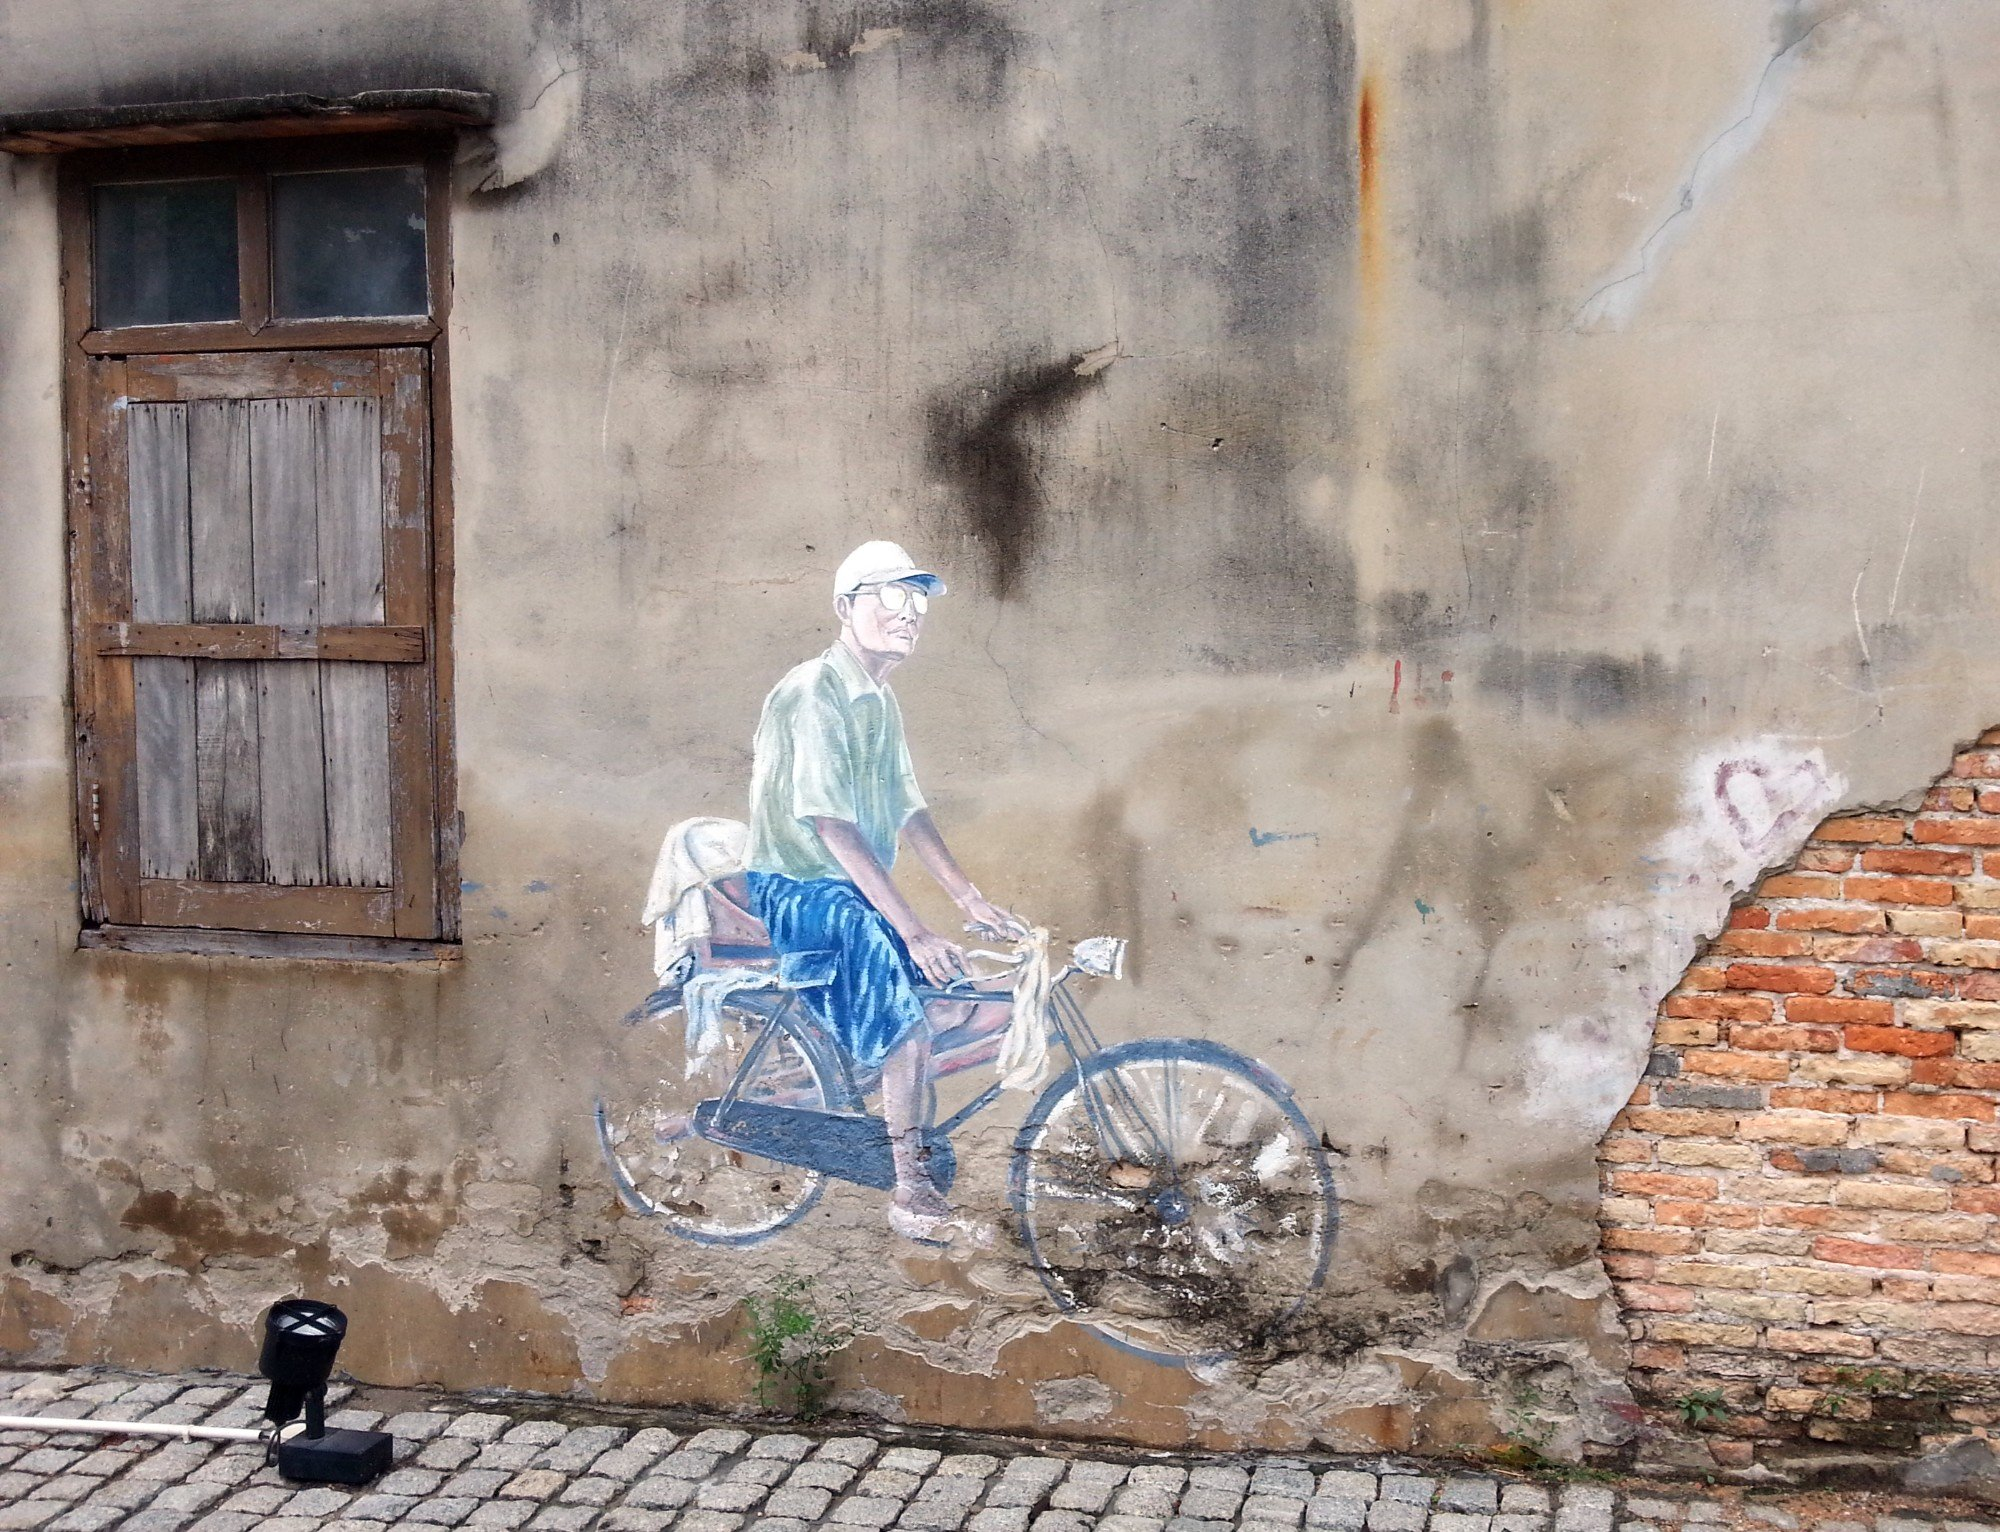 Old Man on a Bicycle mural in Songkhla